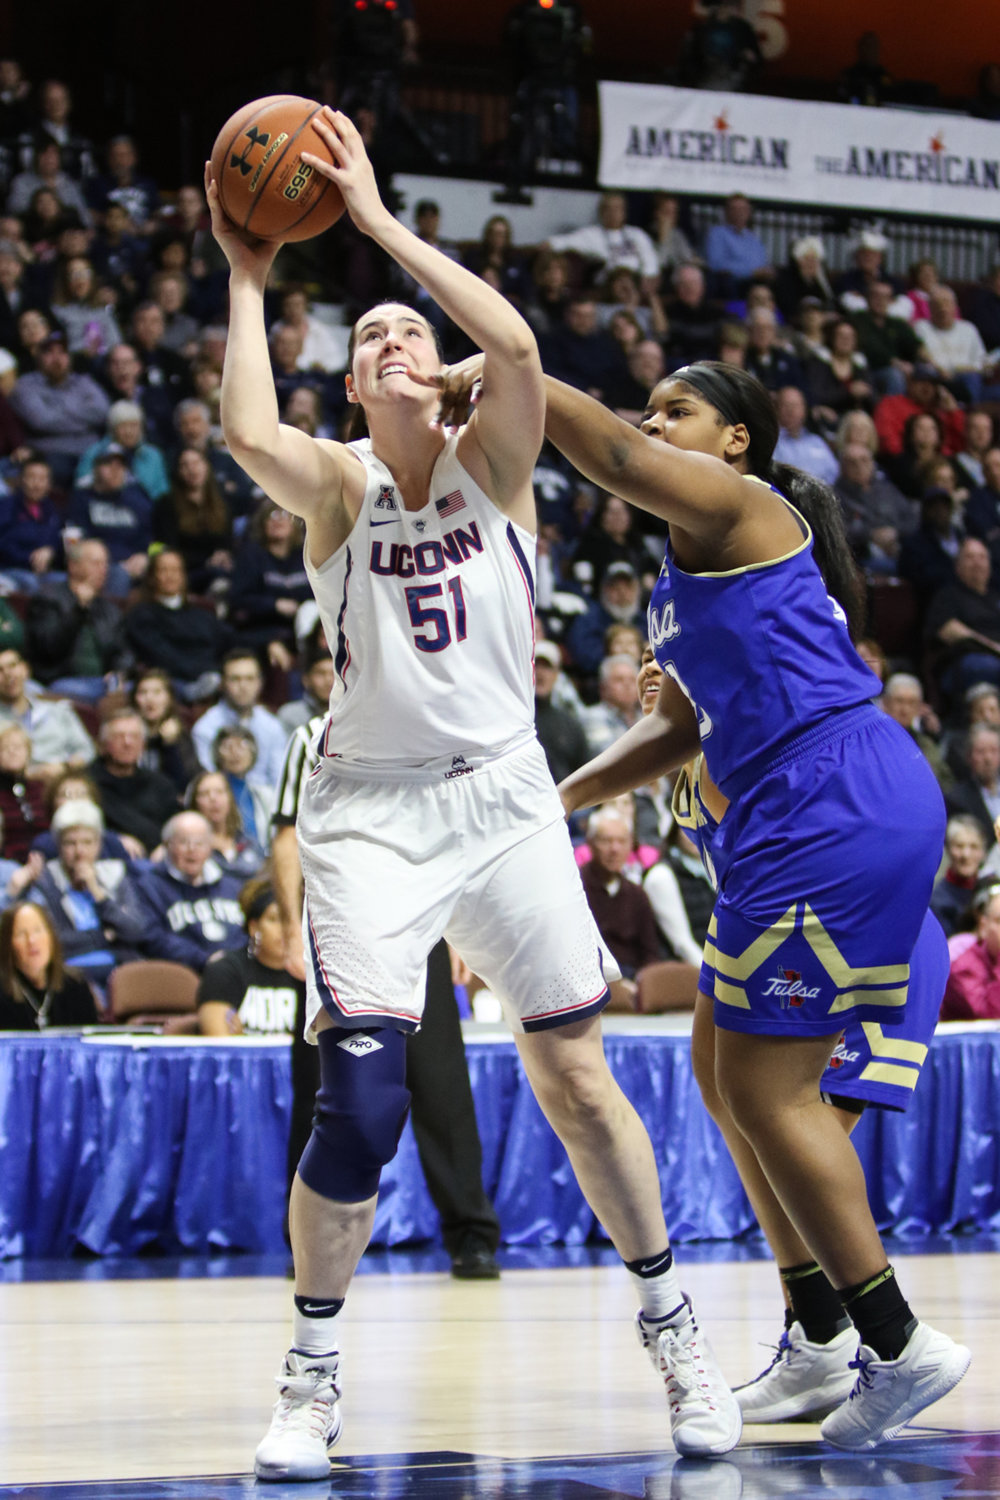 Natalie Butler attempts a lay-up during the Huskies 105-57 victory over the Tulsa Golden Hurricane on Saturday, March 4, 2017. (Jackson Haigis/The Daily Campus)